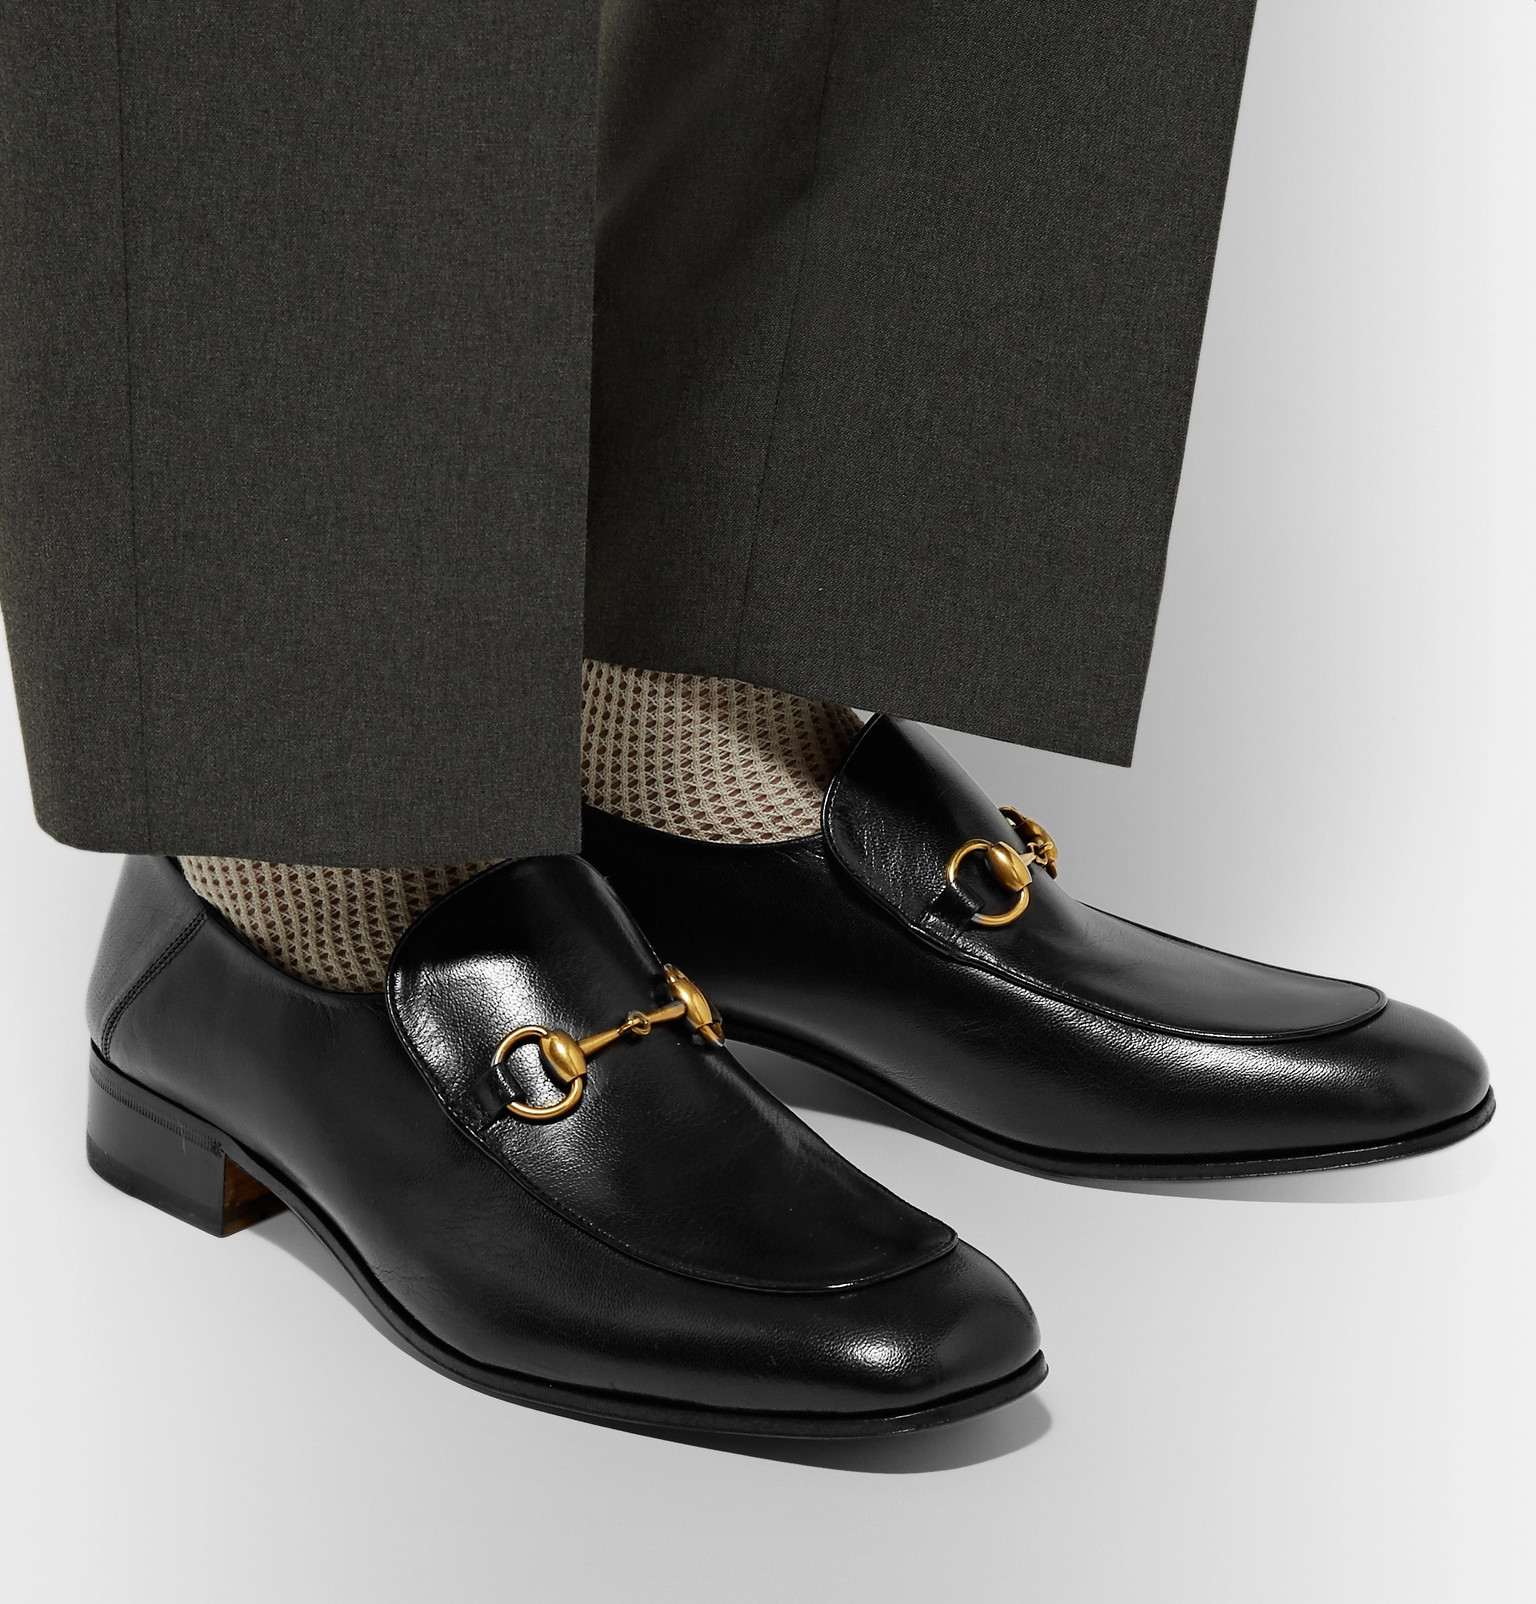 58760b3f6 Gucci - Mister Horsebit Collapsible-Heel Leather Loafers